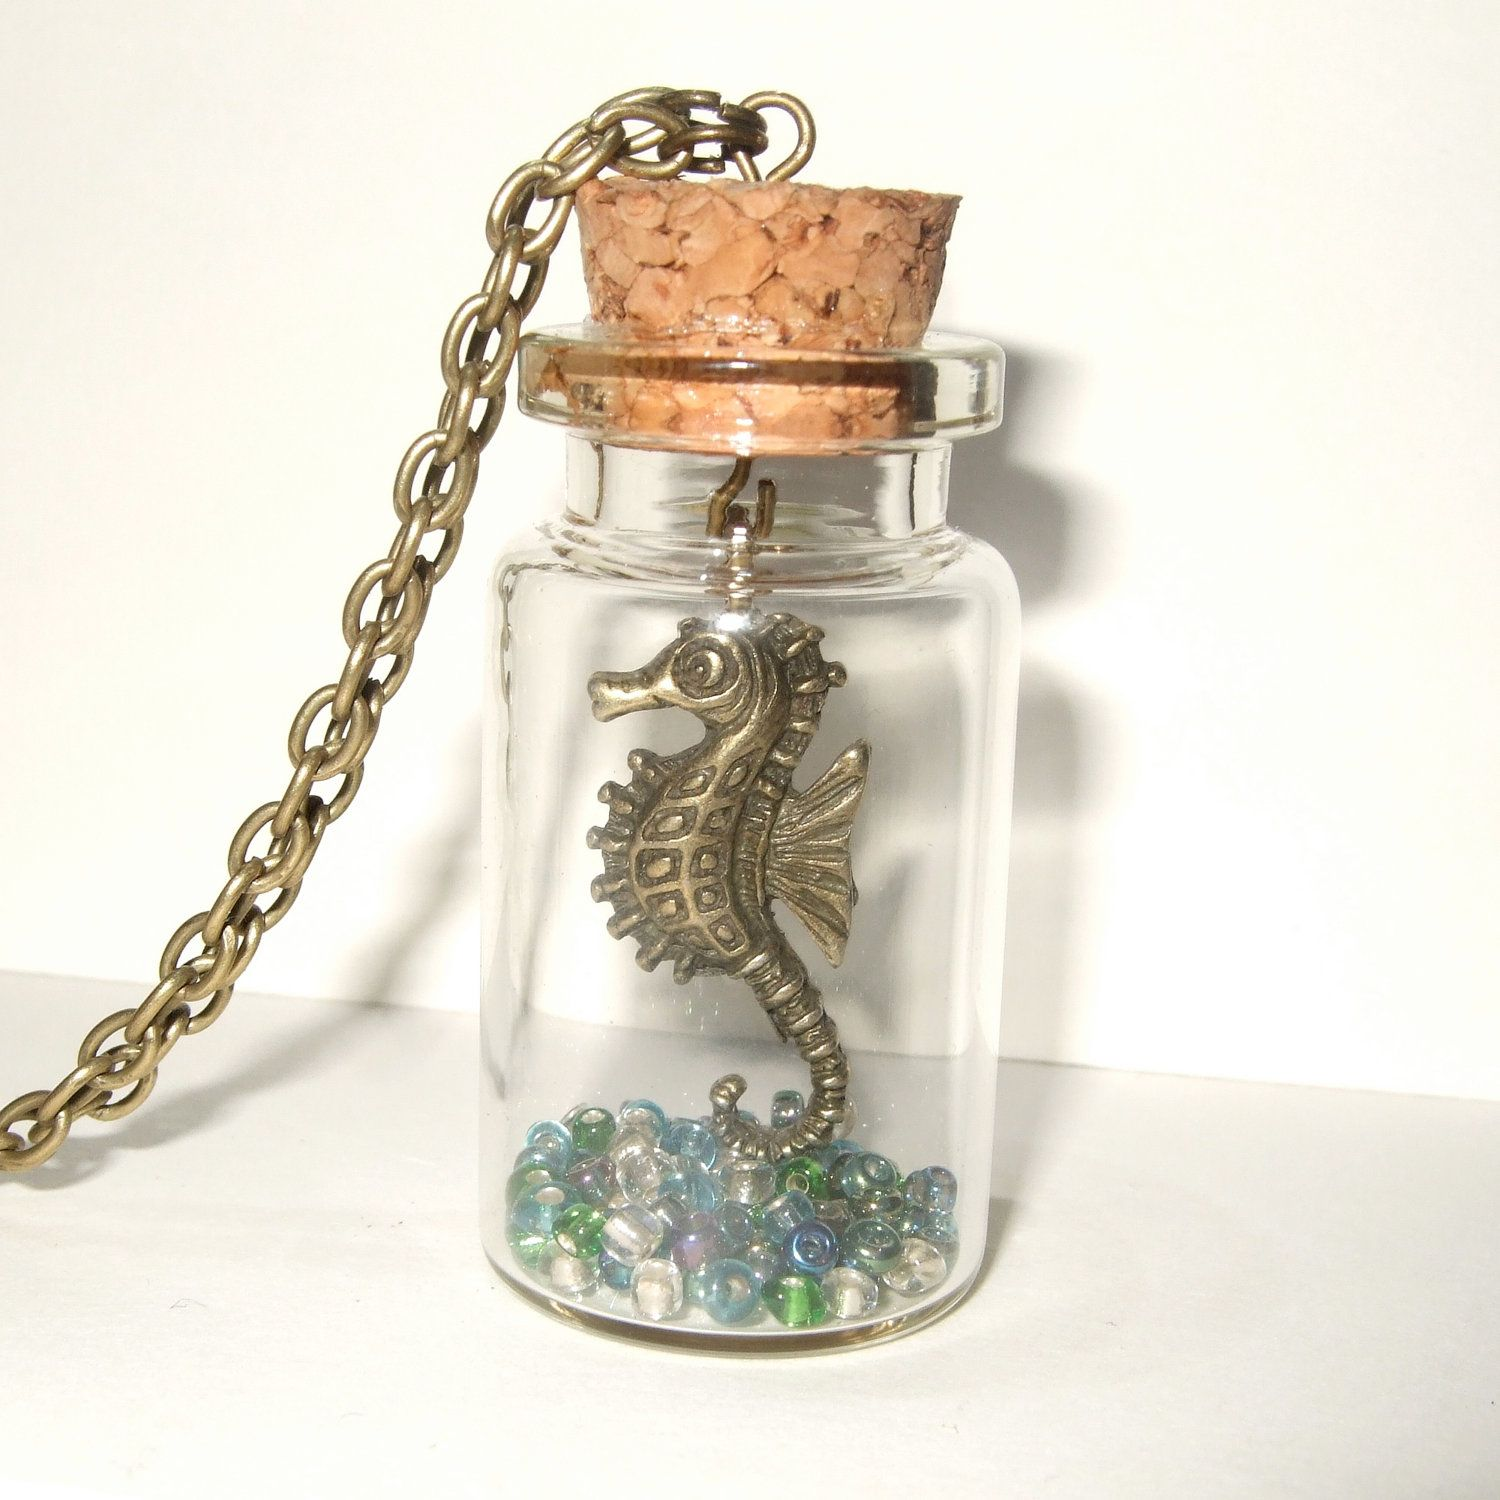 Seahorse necklace seahorse in a bottle pendant seahorse bottle seahorse necklace seahorse in a bottle necklace glass bottle pendant quirky seahorse necklace mozeypictures Choice Image